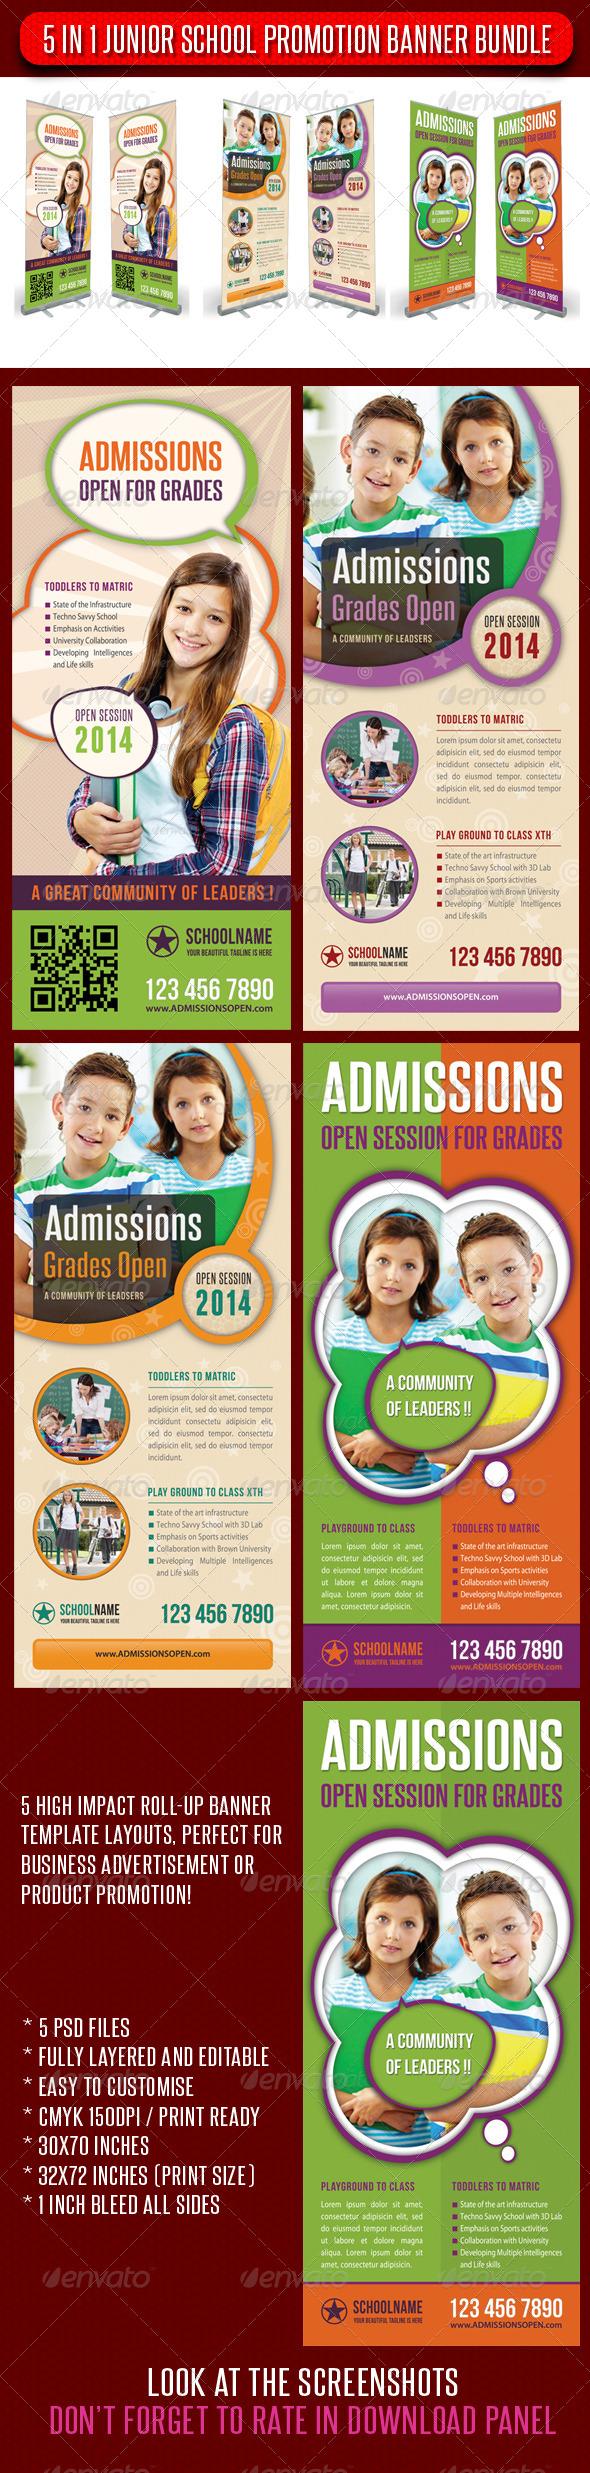 GraphicRiver 5 in 1 Junior School Promotion Banner Bundle 01 6920425